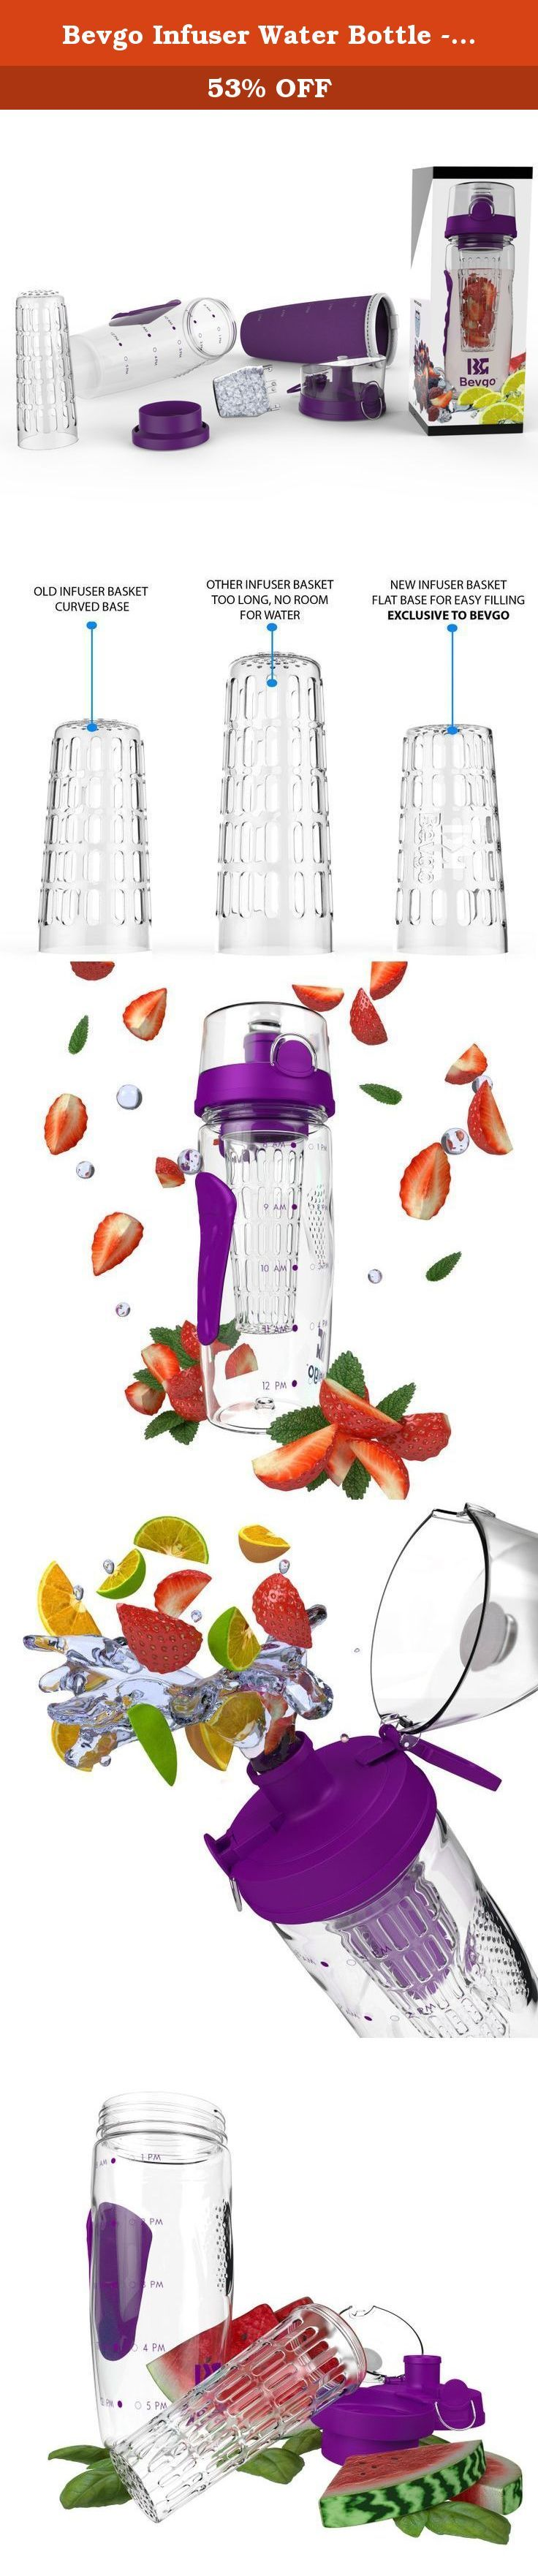 """Bevgo Infuser Water Bottle - Large 32oz - Hydration Timeline Tracker - Detachable Ice Gel Ball With Flip Top Lid - Quit Sugar - Save Money - Multiple Colors with Recipe Book Gift Included. HOW OFTEN HAVE YOU SAID """"I DON'T DRINK ENOUGH WATER, BUT I WANT TO""""? What better way to refuel and stay hydrated than with fresh fruit. The Bevgo Fruit Infuser Water Bottle is the original and best made infuser on the market. It's perfect for the office, gym, yoga, hiking, camping, travelling and even…"""